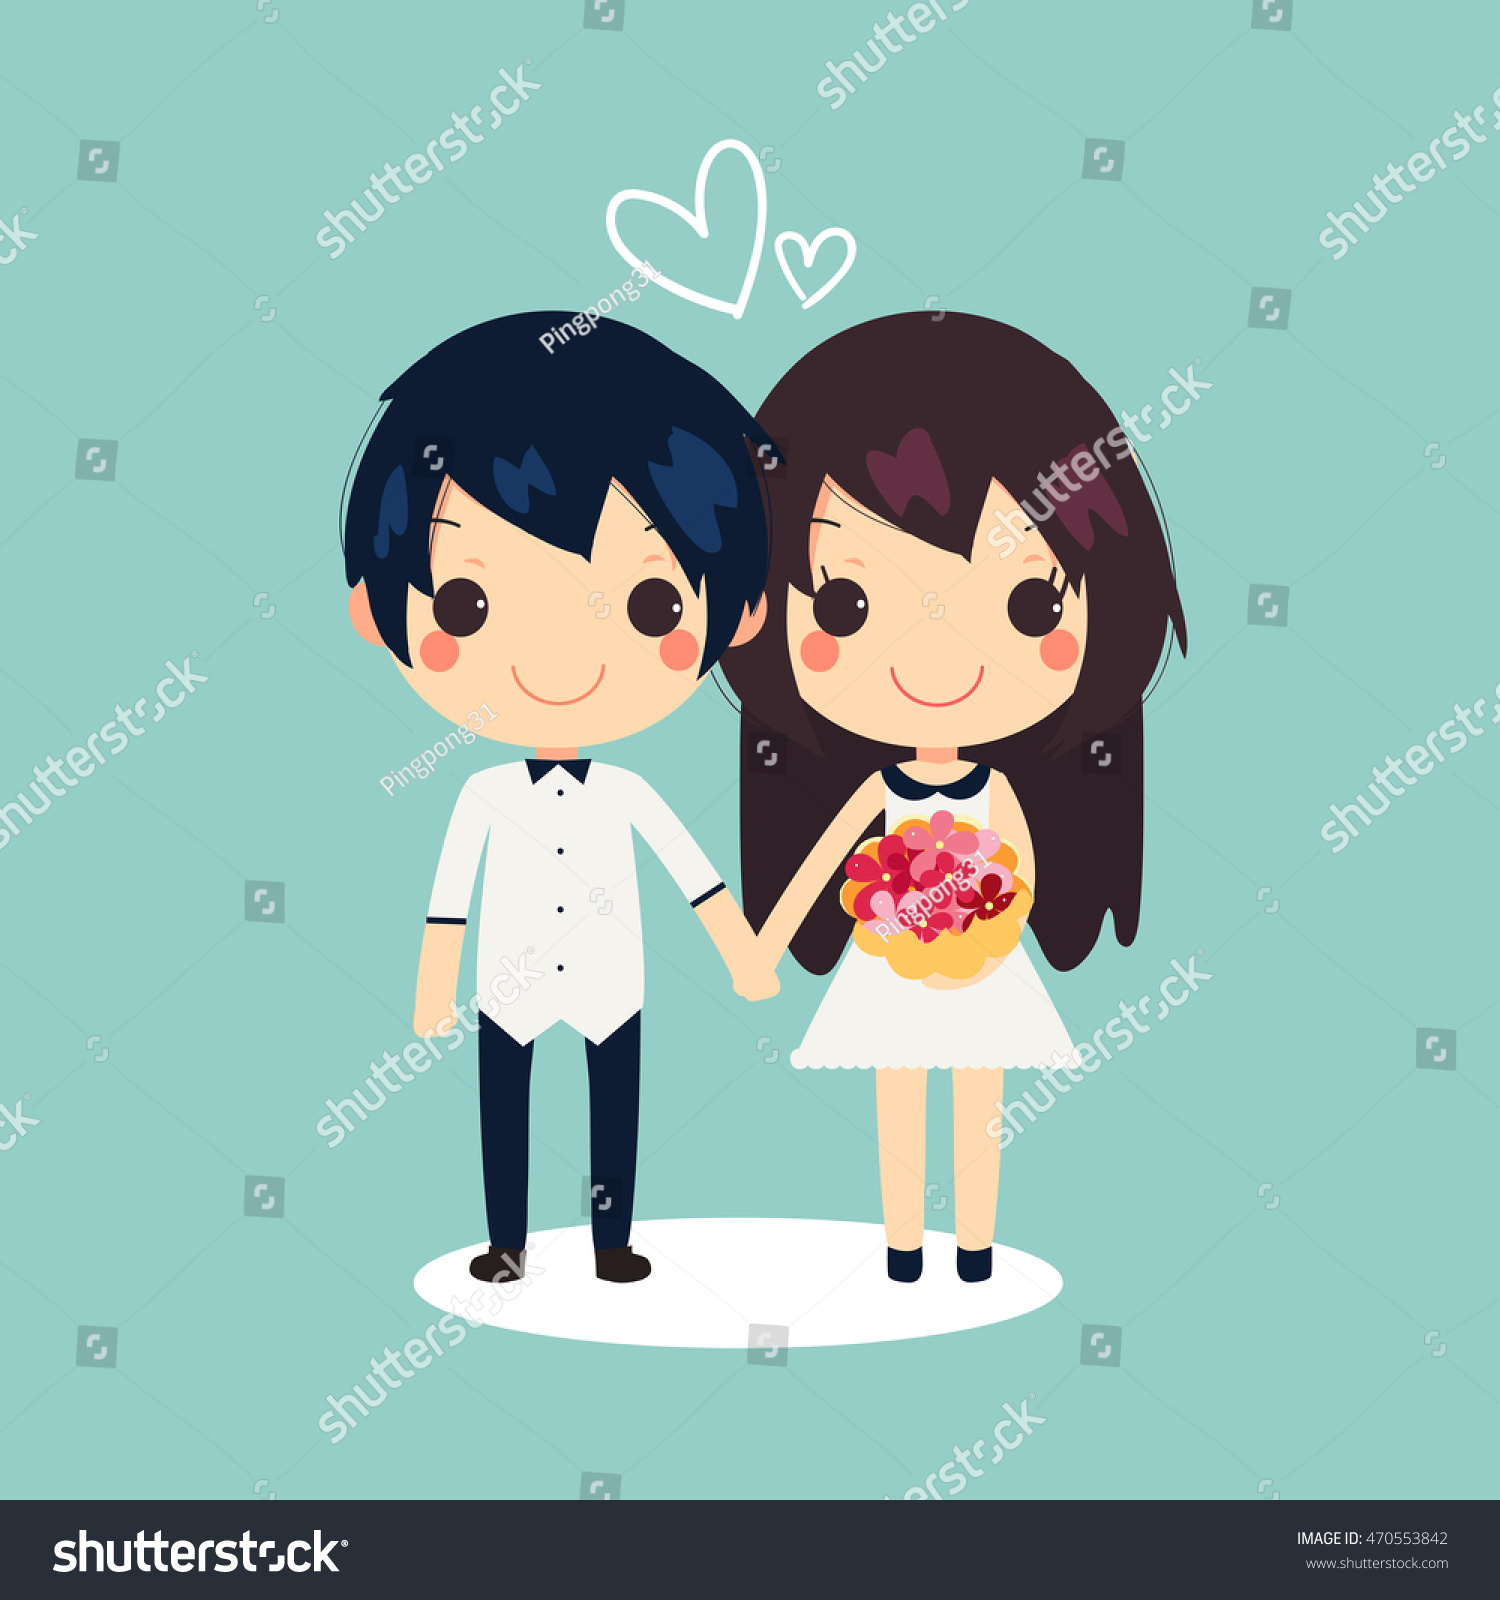 Cute couple hold hands and have flowers in another girls hand with white heart shape vector